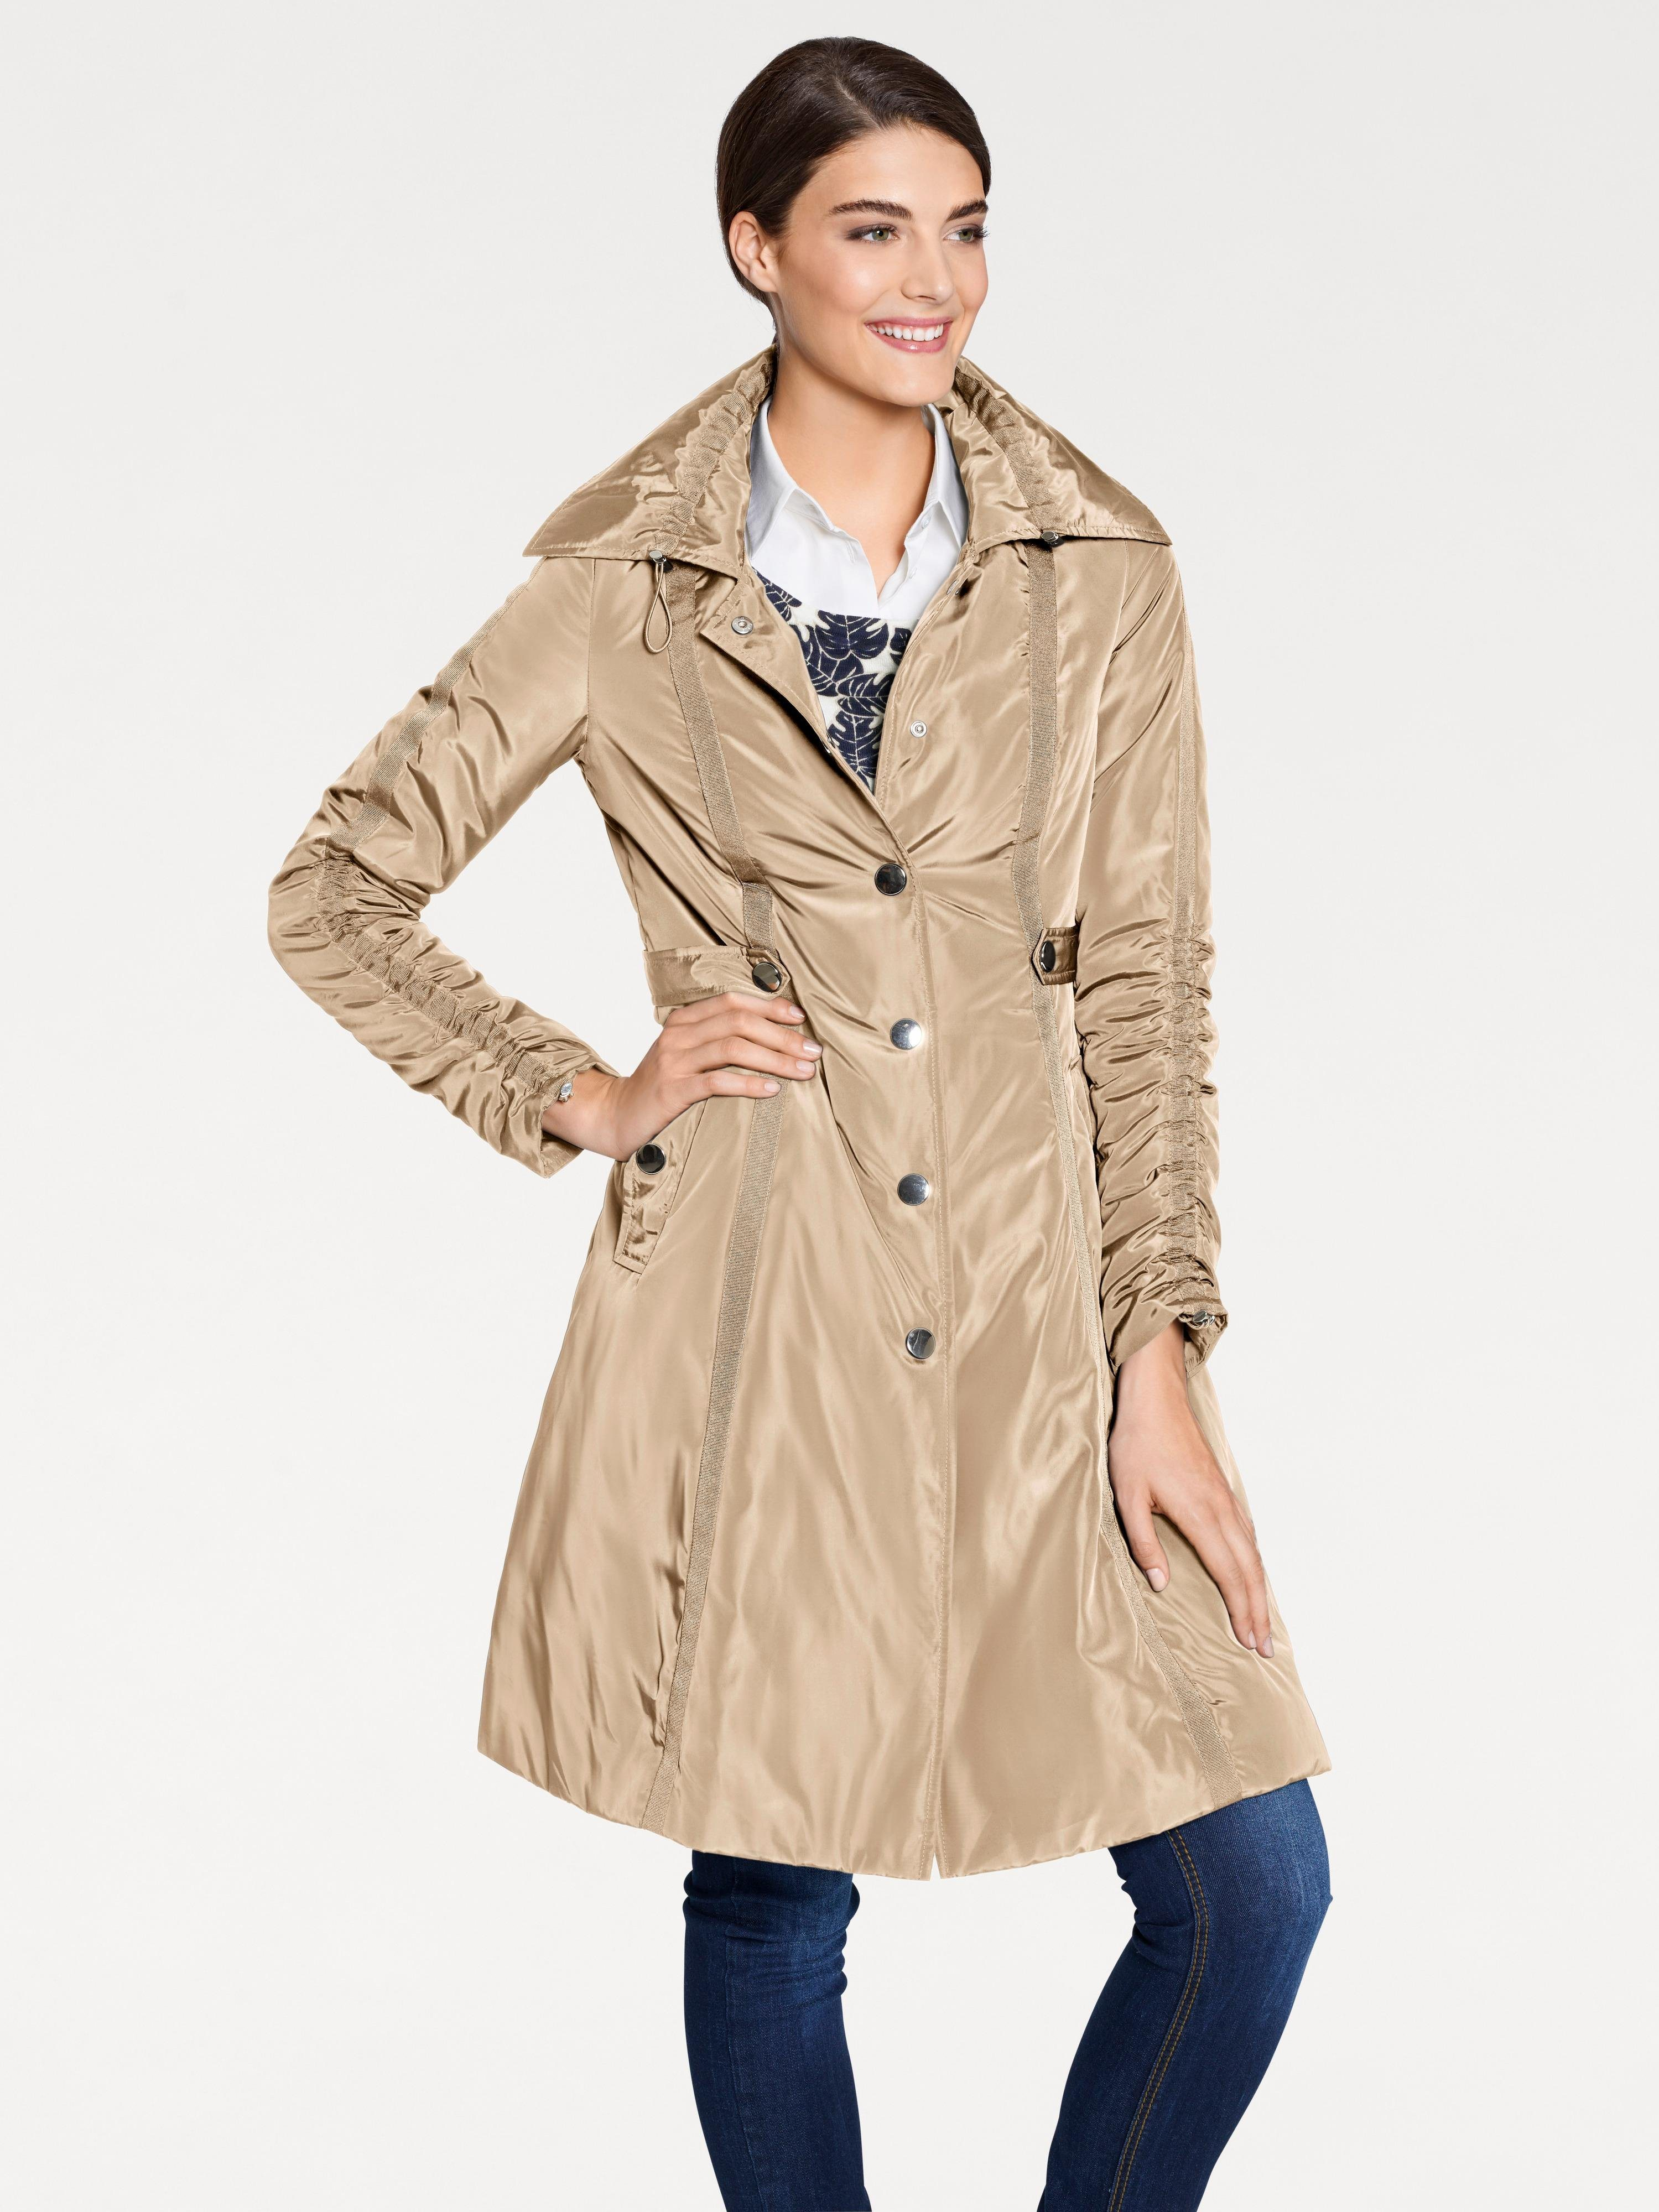 PATRIZIA DINI by Heine Trenchcoat mit Tunnelzug | Bekleidung > Mäntel > Trenchcoats | Ca - Polyester | PATRIZIA DINI by Heine